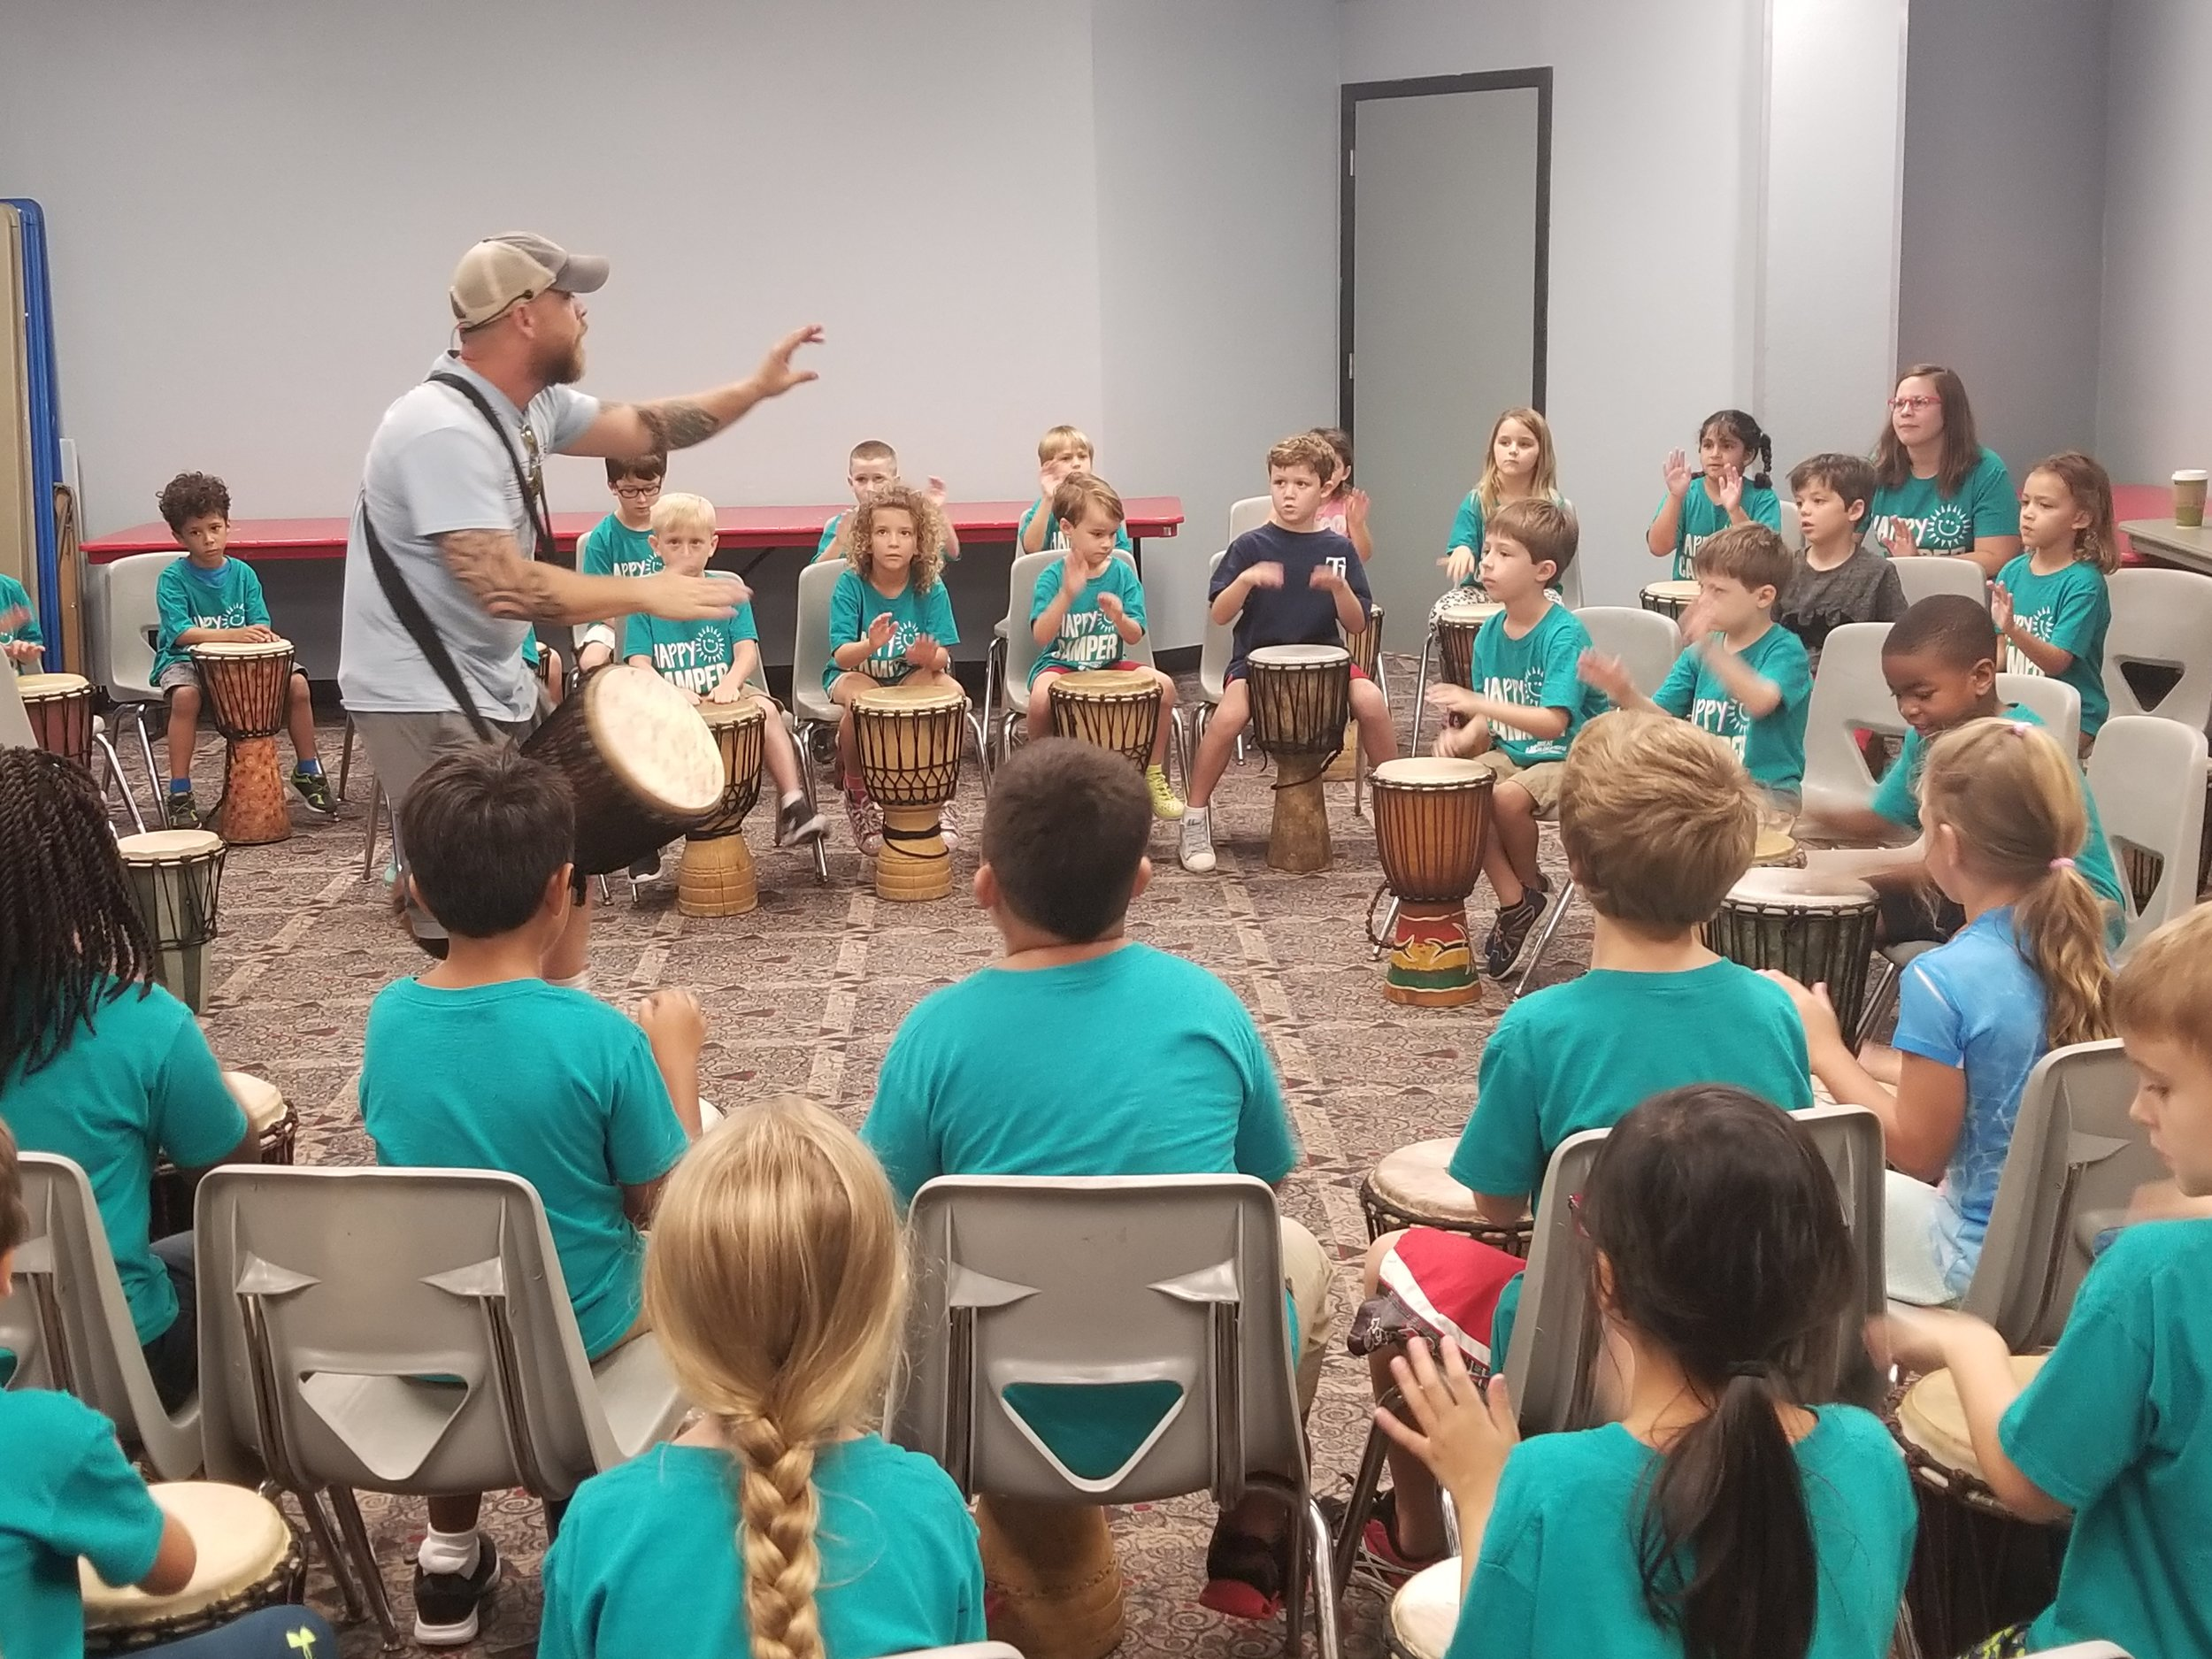 Mr. Steve and Mr. Paul (not pictured) from Giving Tree Music got our campers moving and grooving to the beat!